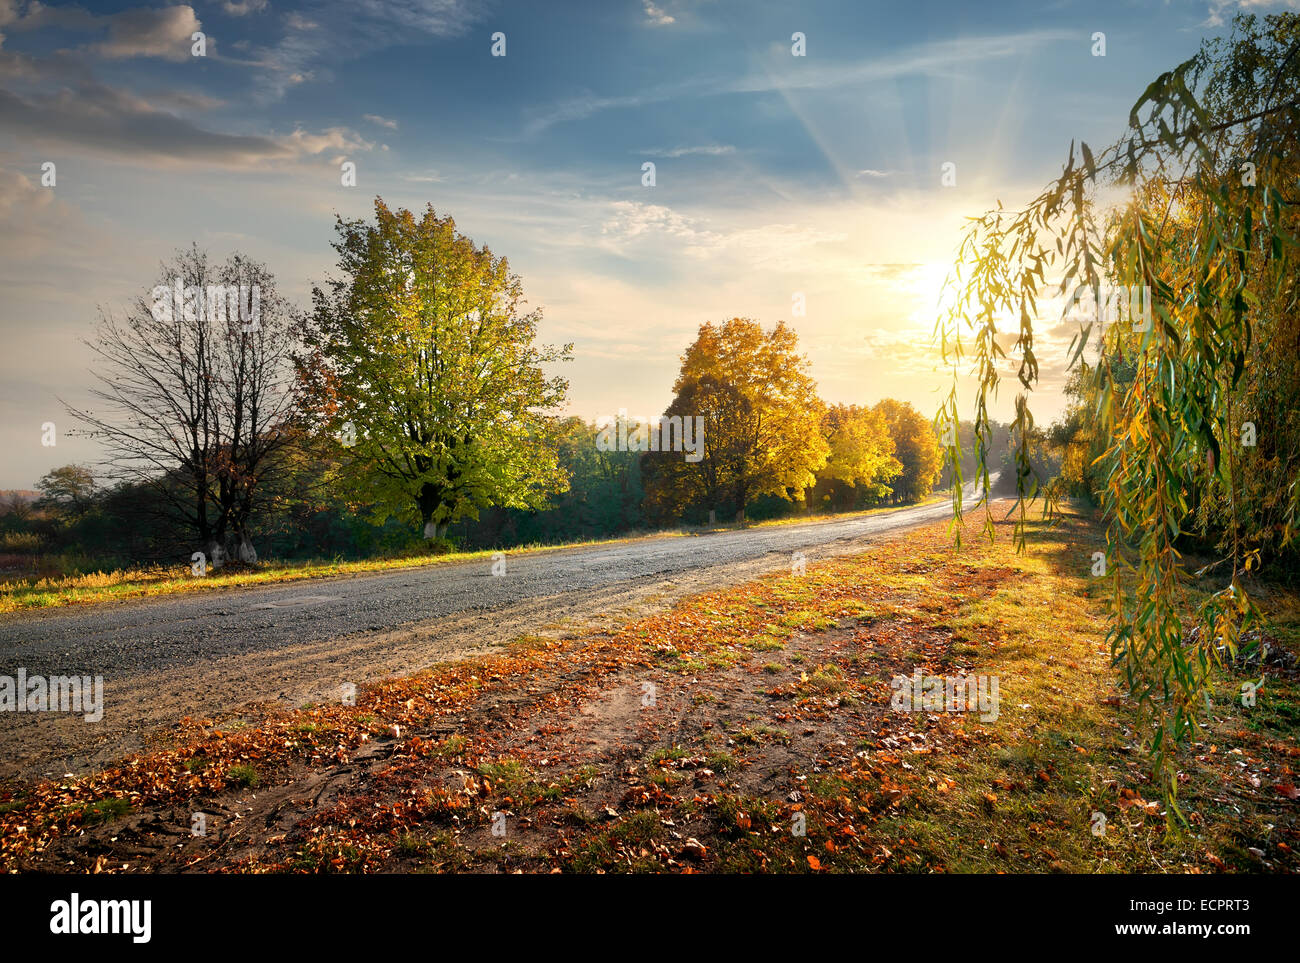 Highway through the beautiful autumn forest and bright sun - Stock Image